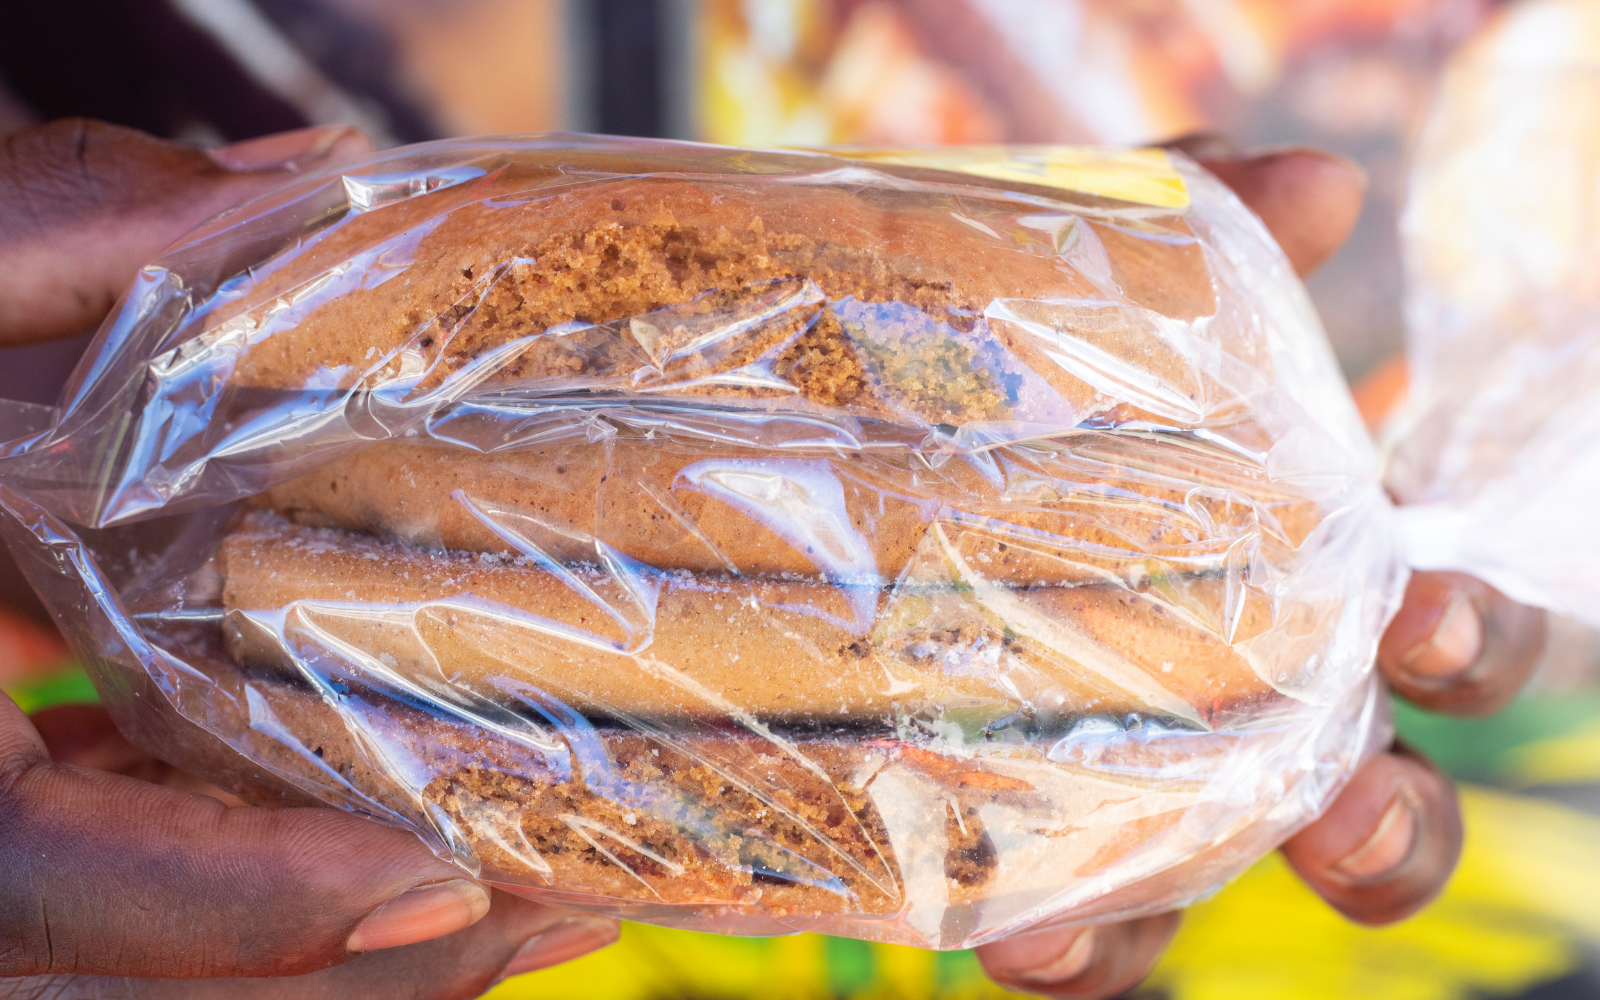 13 Zero-waste Alternatives to Cling Film